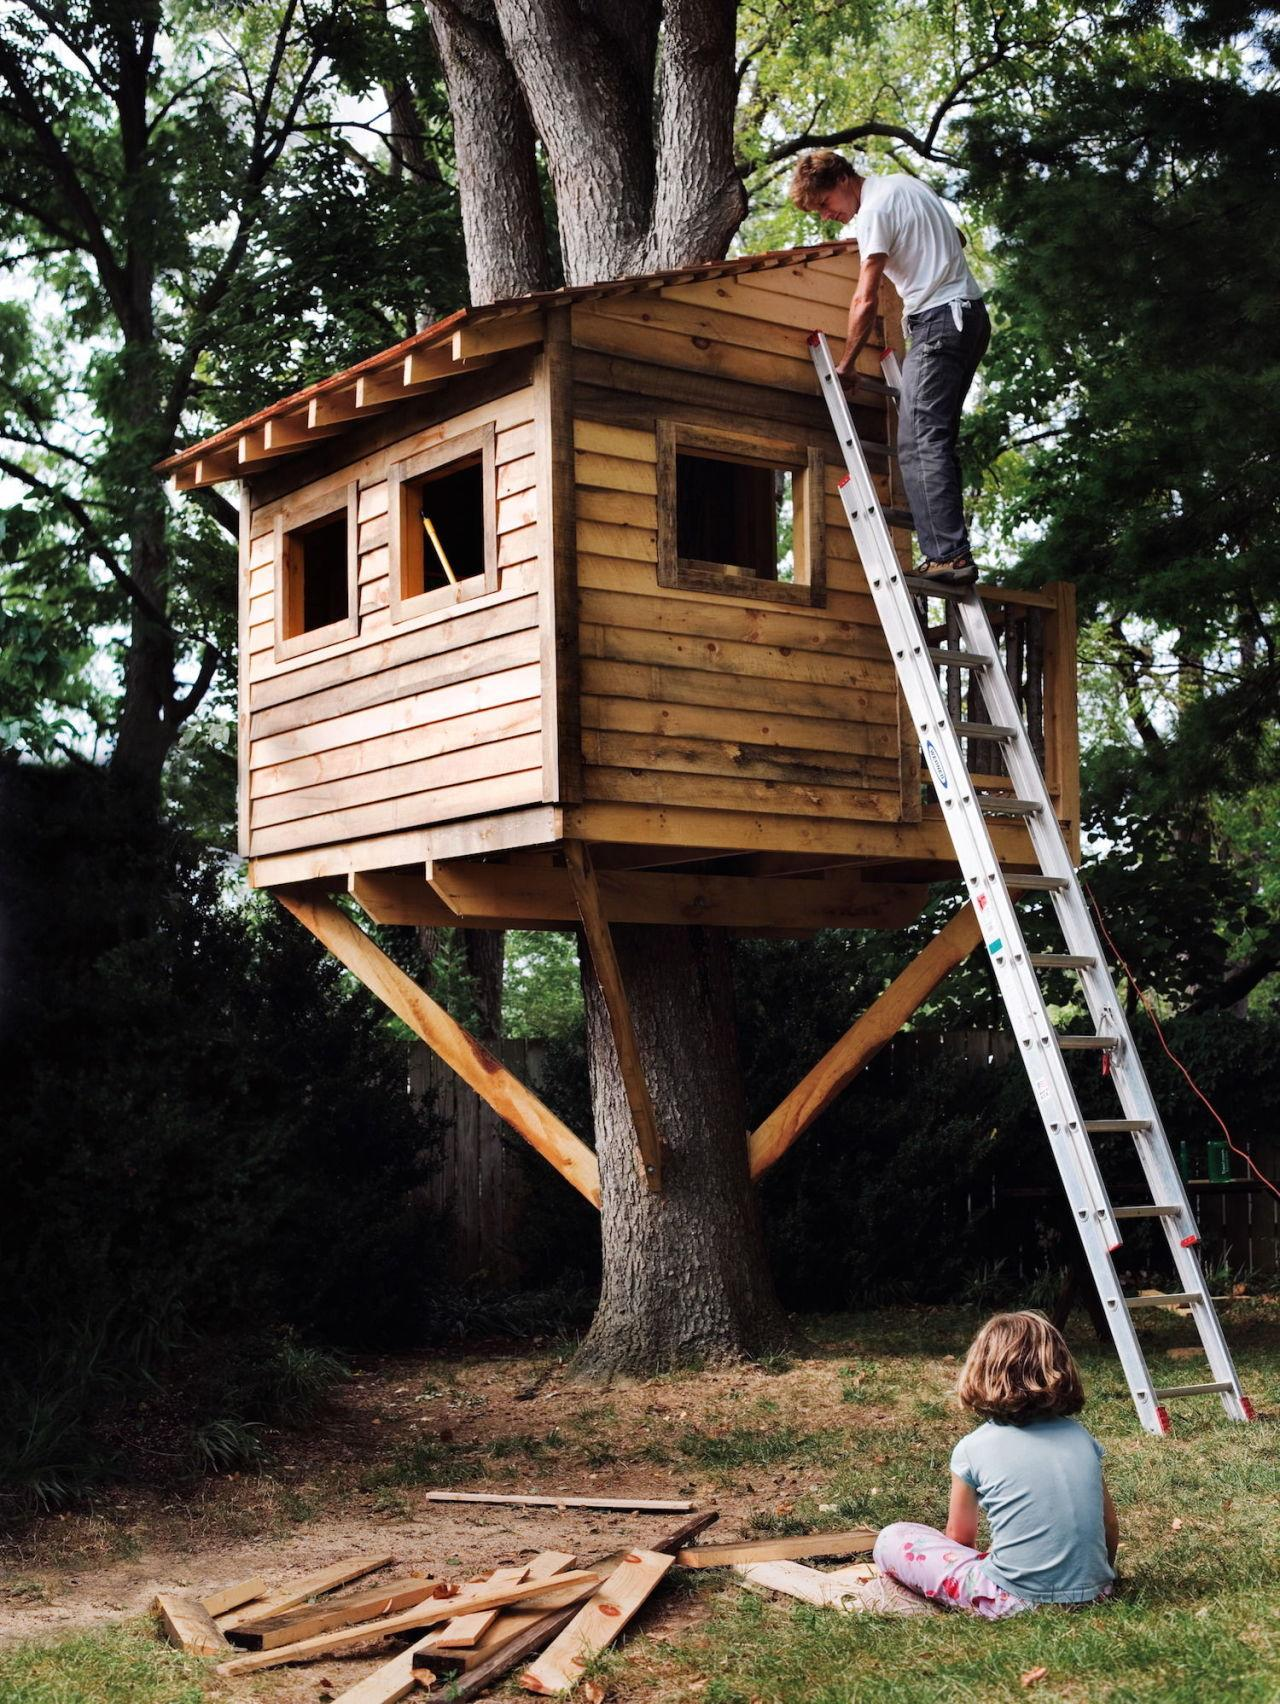 """<p>This ambitious project can take a few weeks, but will create memories that last a lifetime. A kid's treehouse is the ultimate backyard play structure. If you're handy and you've got a solid tree, then go for it!</p><p><a href=""""http://www.popularmechanics.com/home/how-to-plans/how-to/a5490/how-to-build-a-treehouse/"""" rel=""""nofollow noopener"""" target=""""_blank"""" data-ylk=""""slk:How to Build a Treehouse"""" class=""""link rapid-noclick-resp"""">How to Build a Treehouse</a></p>"""